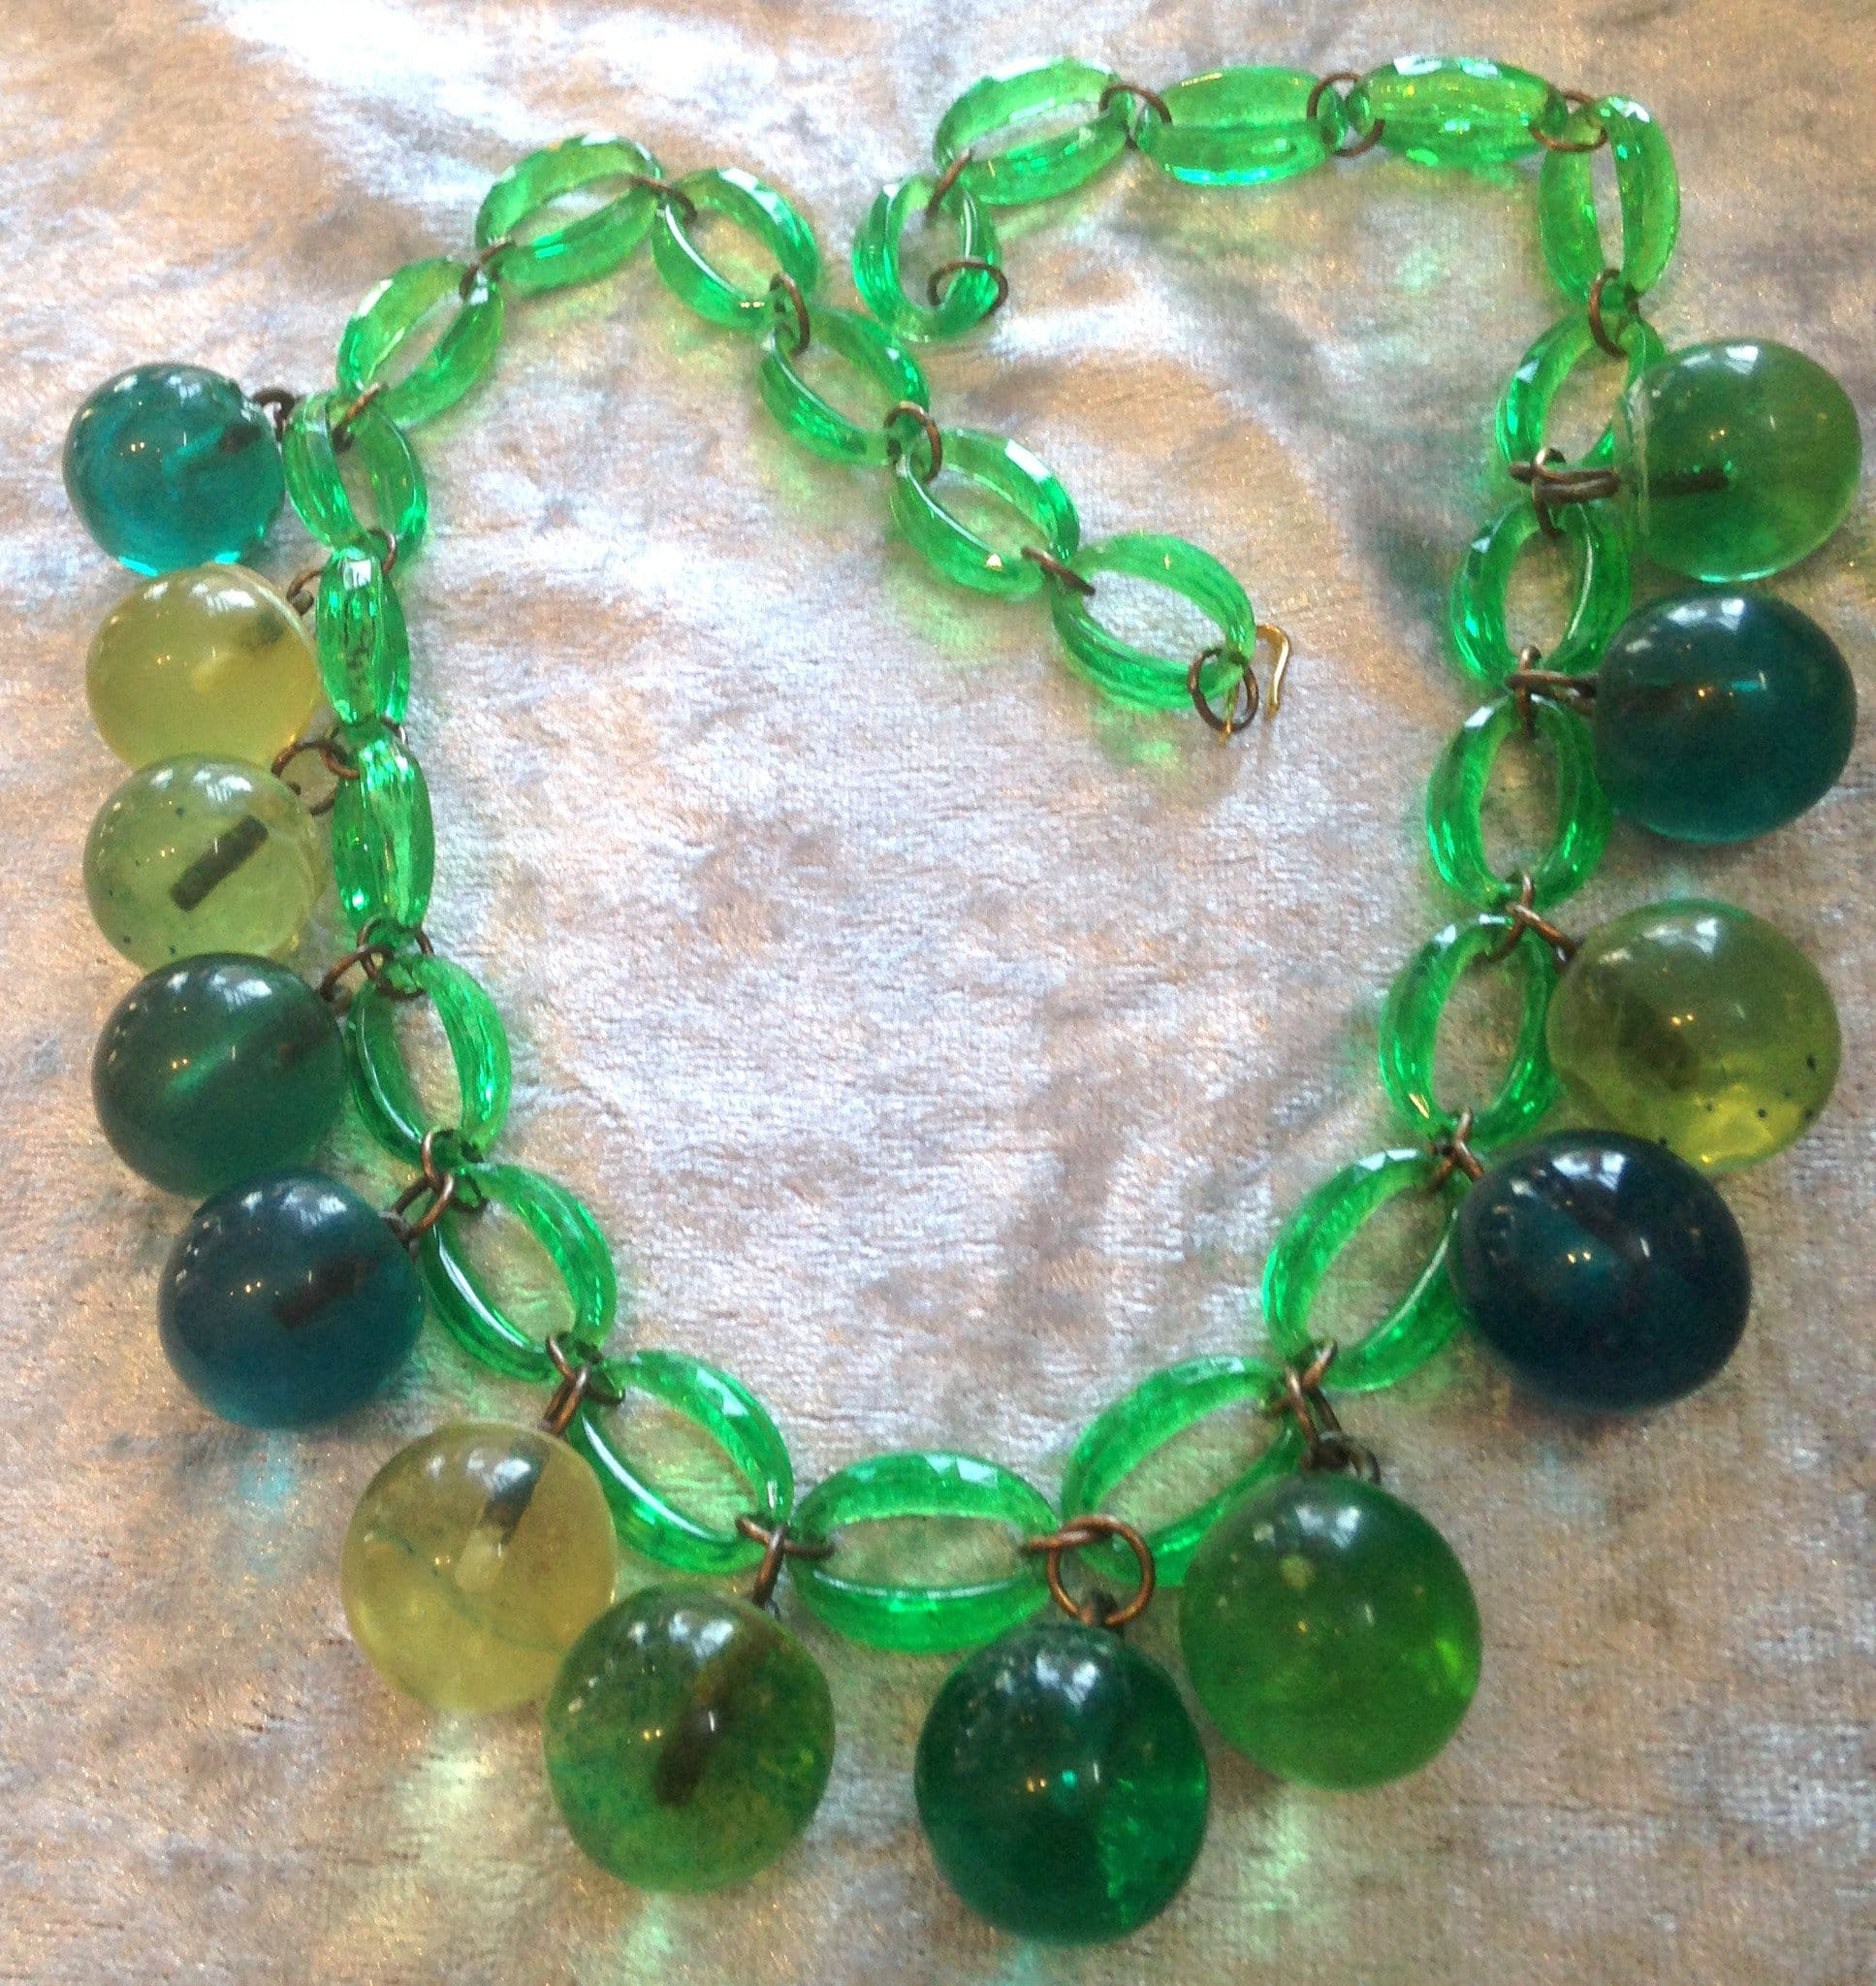 Vintage  early plastic 1960's balls necklace